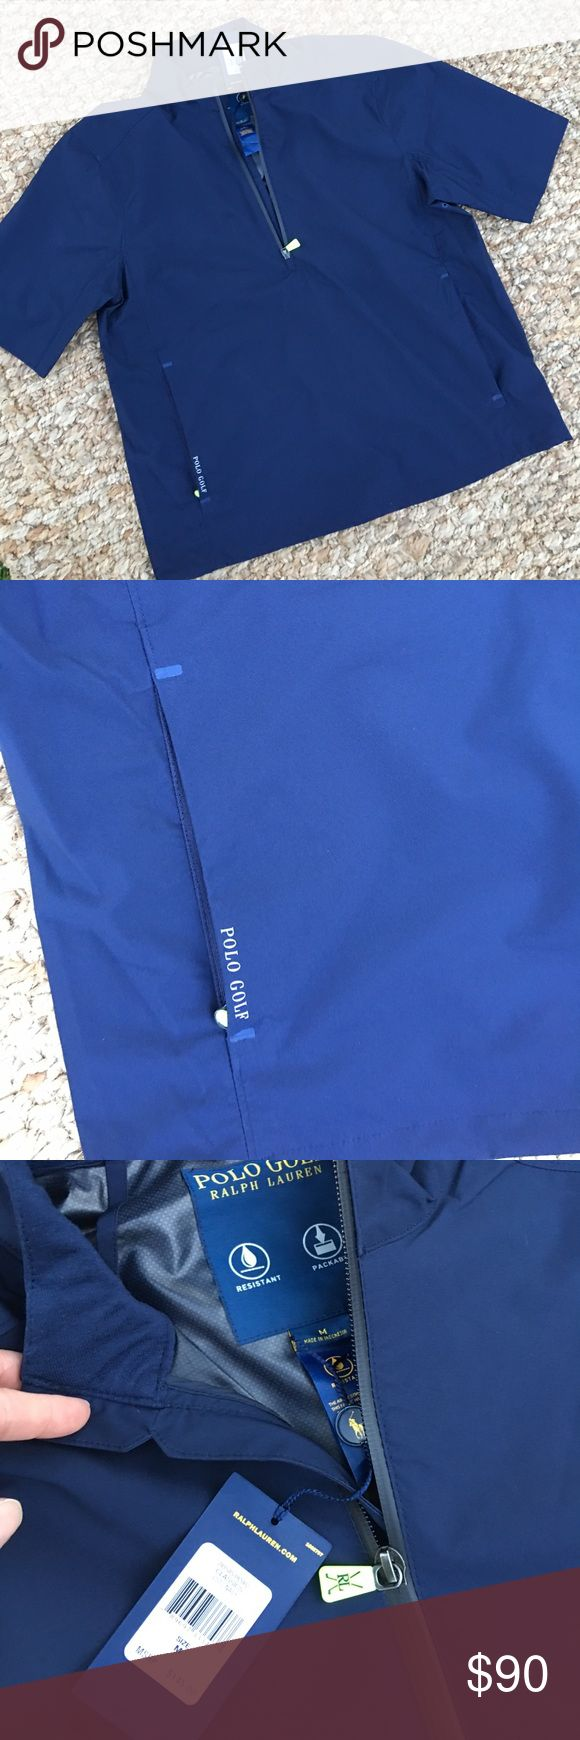 Polo Golf short sleeve wind shirt quarter zip NWT. Rain resistant, packable wind shirt. Stay dry but not as hot as a full sleeve jacket. Quarter zip and zip pockets. Polo by Ralph Lauren Jackets & Coats Performance Jackets